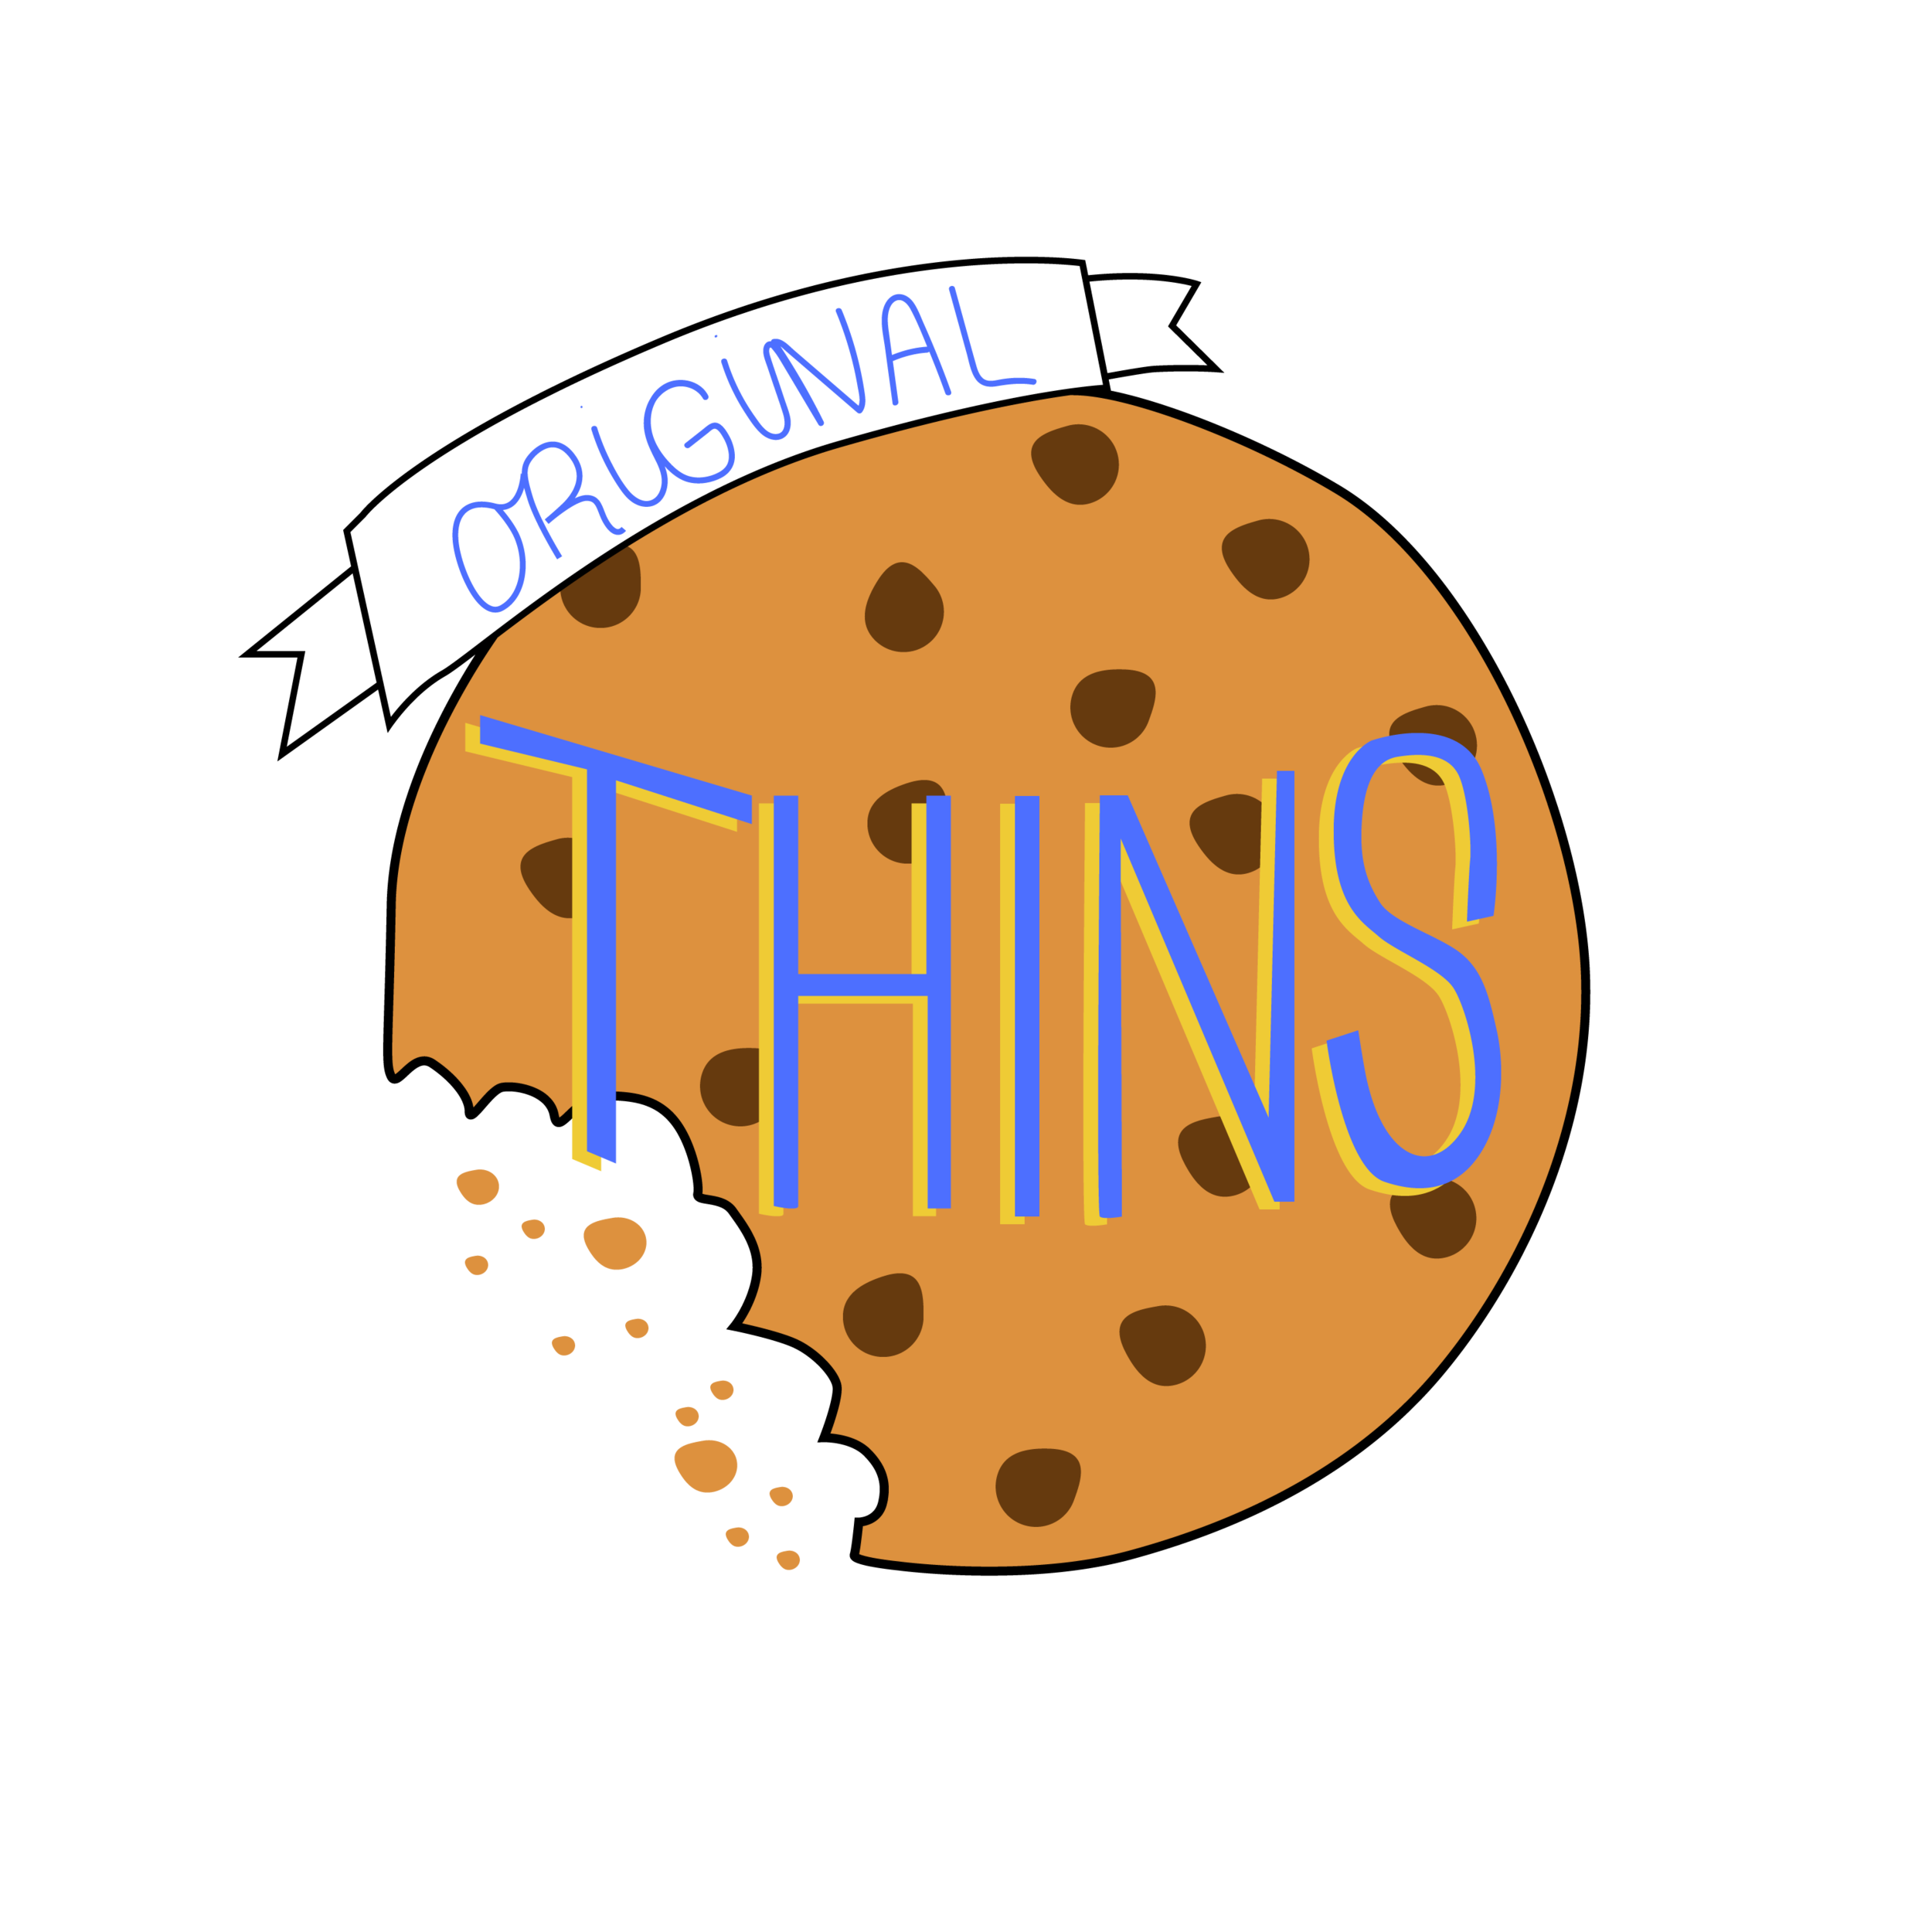 Original Thins - Wiry, agile, and can make shots from anywhere on the court. Guarding them could really become an issue.